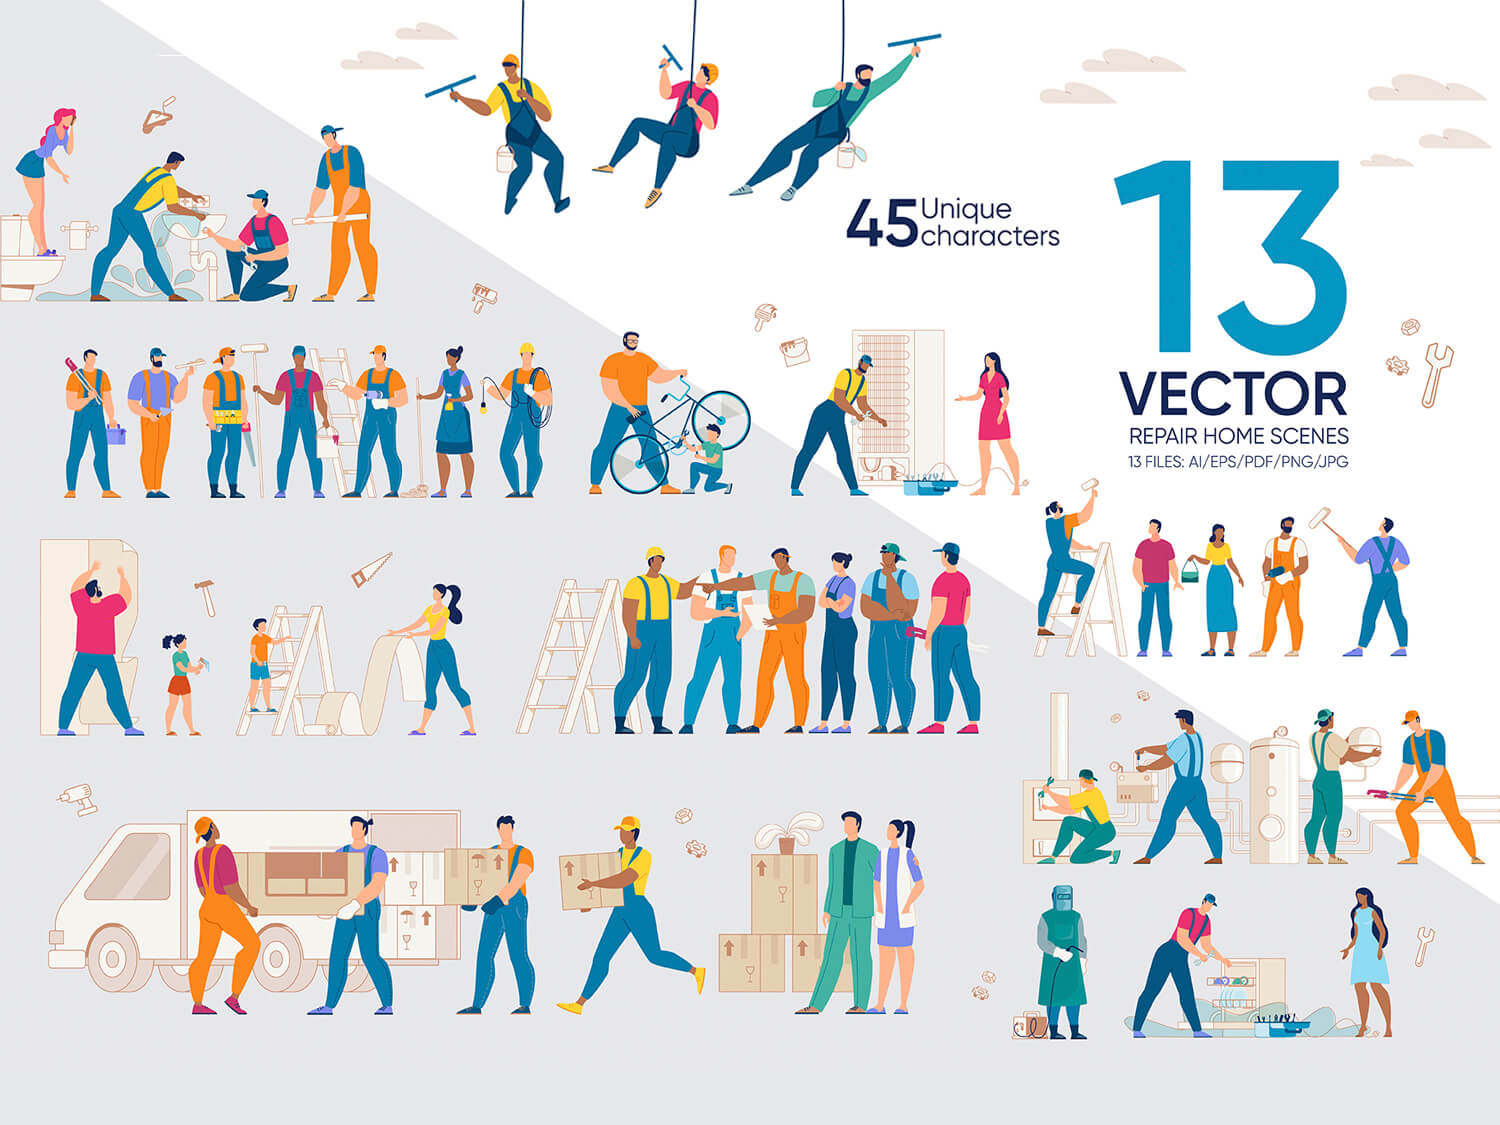 24-in-1 Flaticons Bundle: 13 Repair Home Vector Scenes